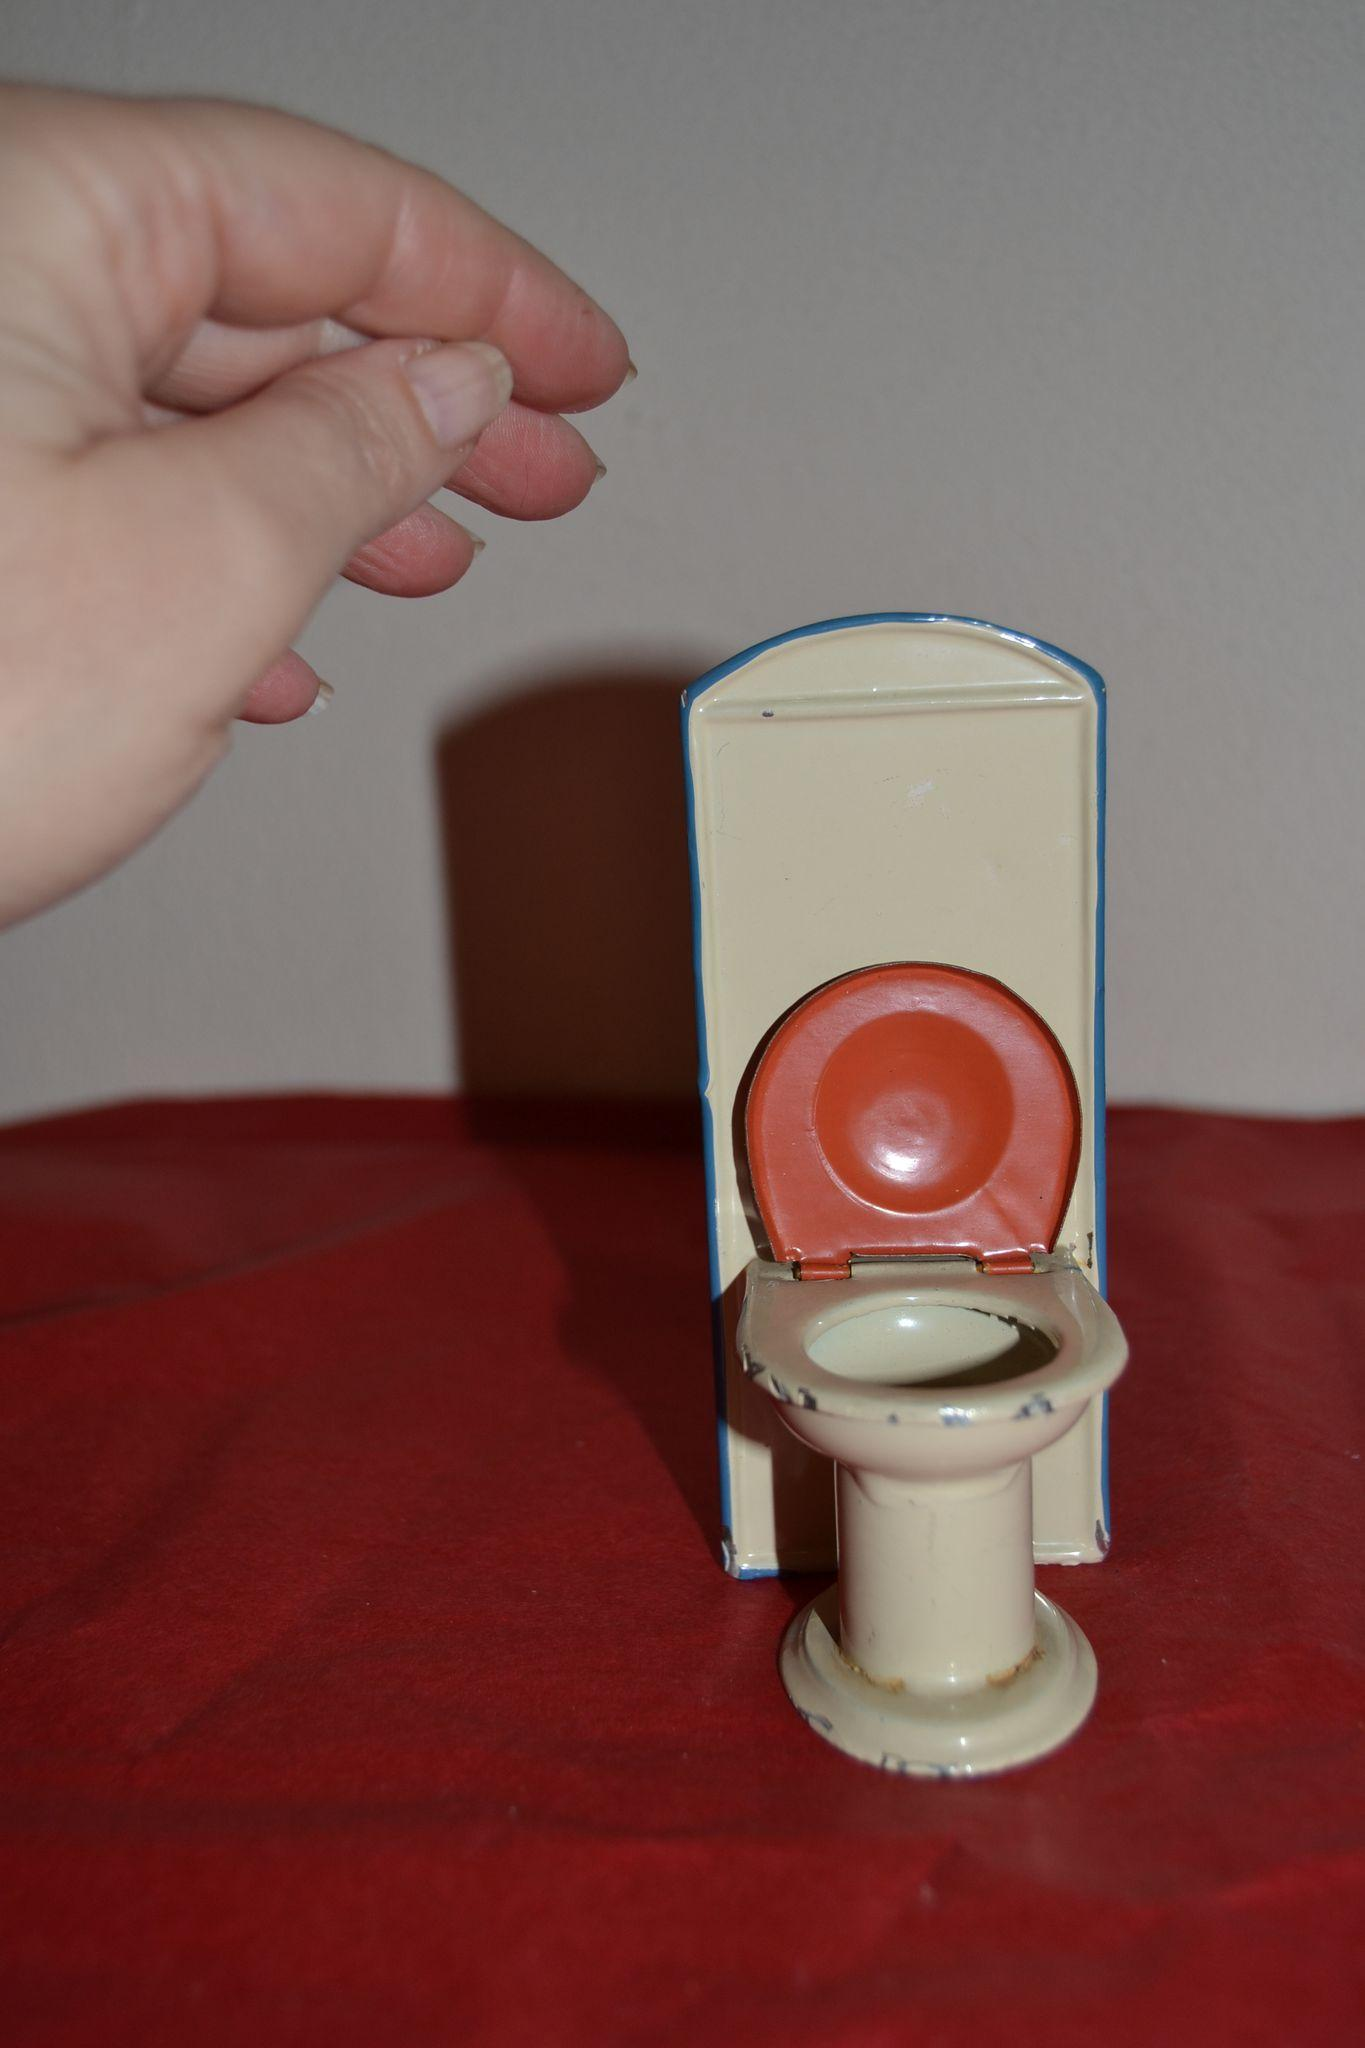 Vintage Toy Potty : Vintage old toilet for doll s house from lafarandolls on